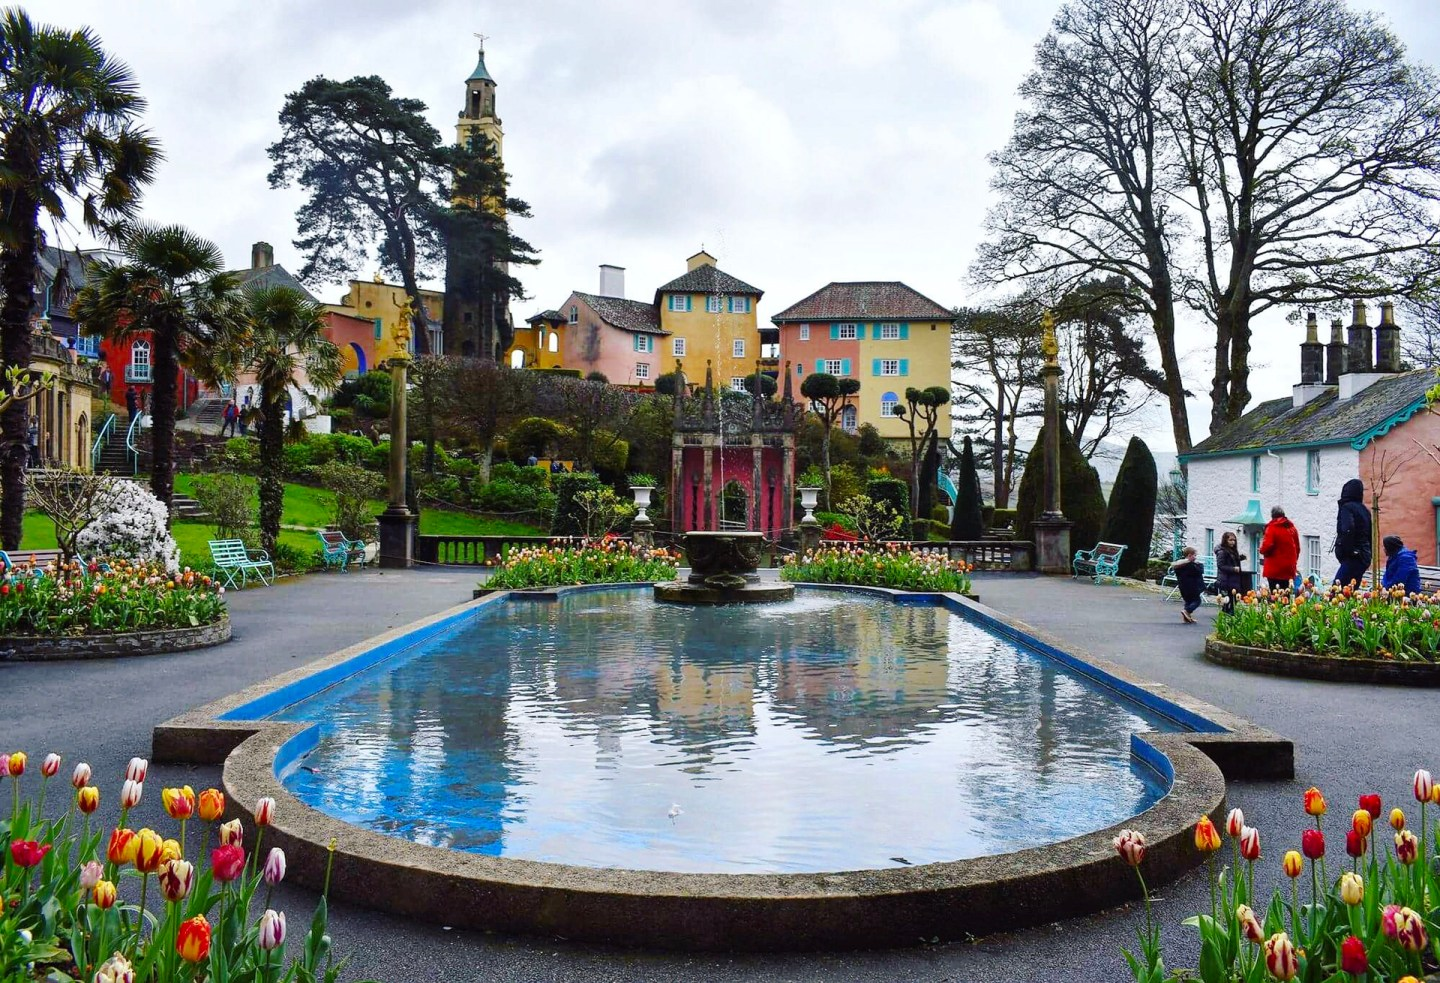 Portmeirion Wales | Could this be the most Instagram Worthy Village in the UK?